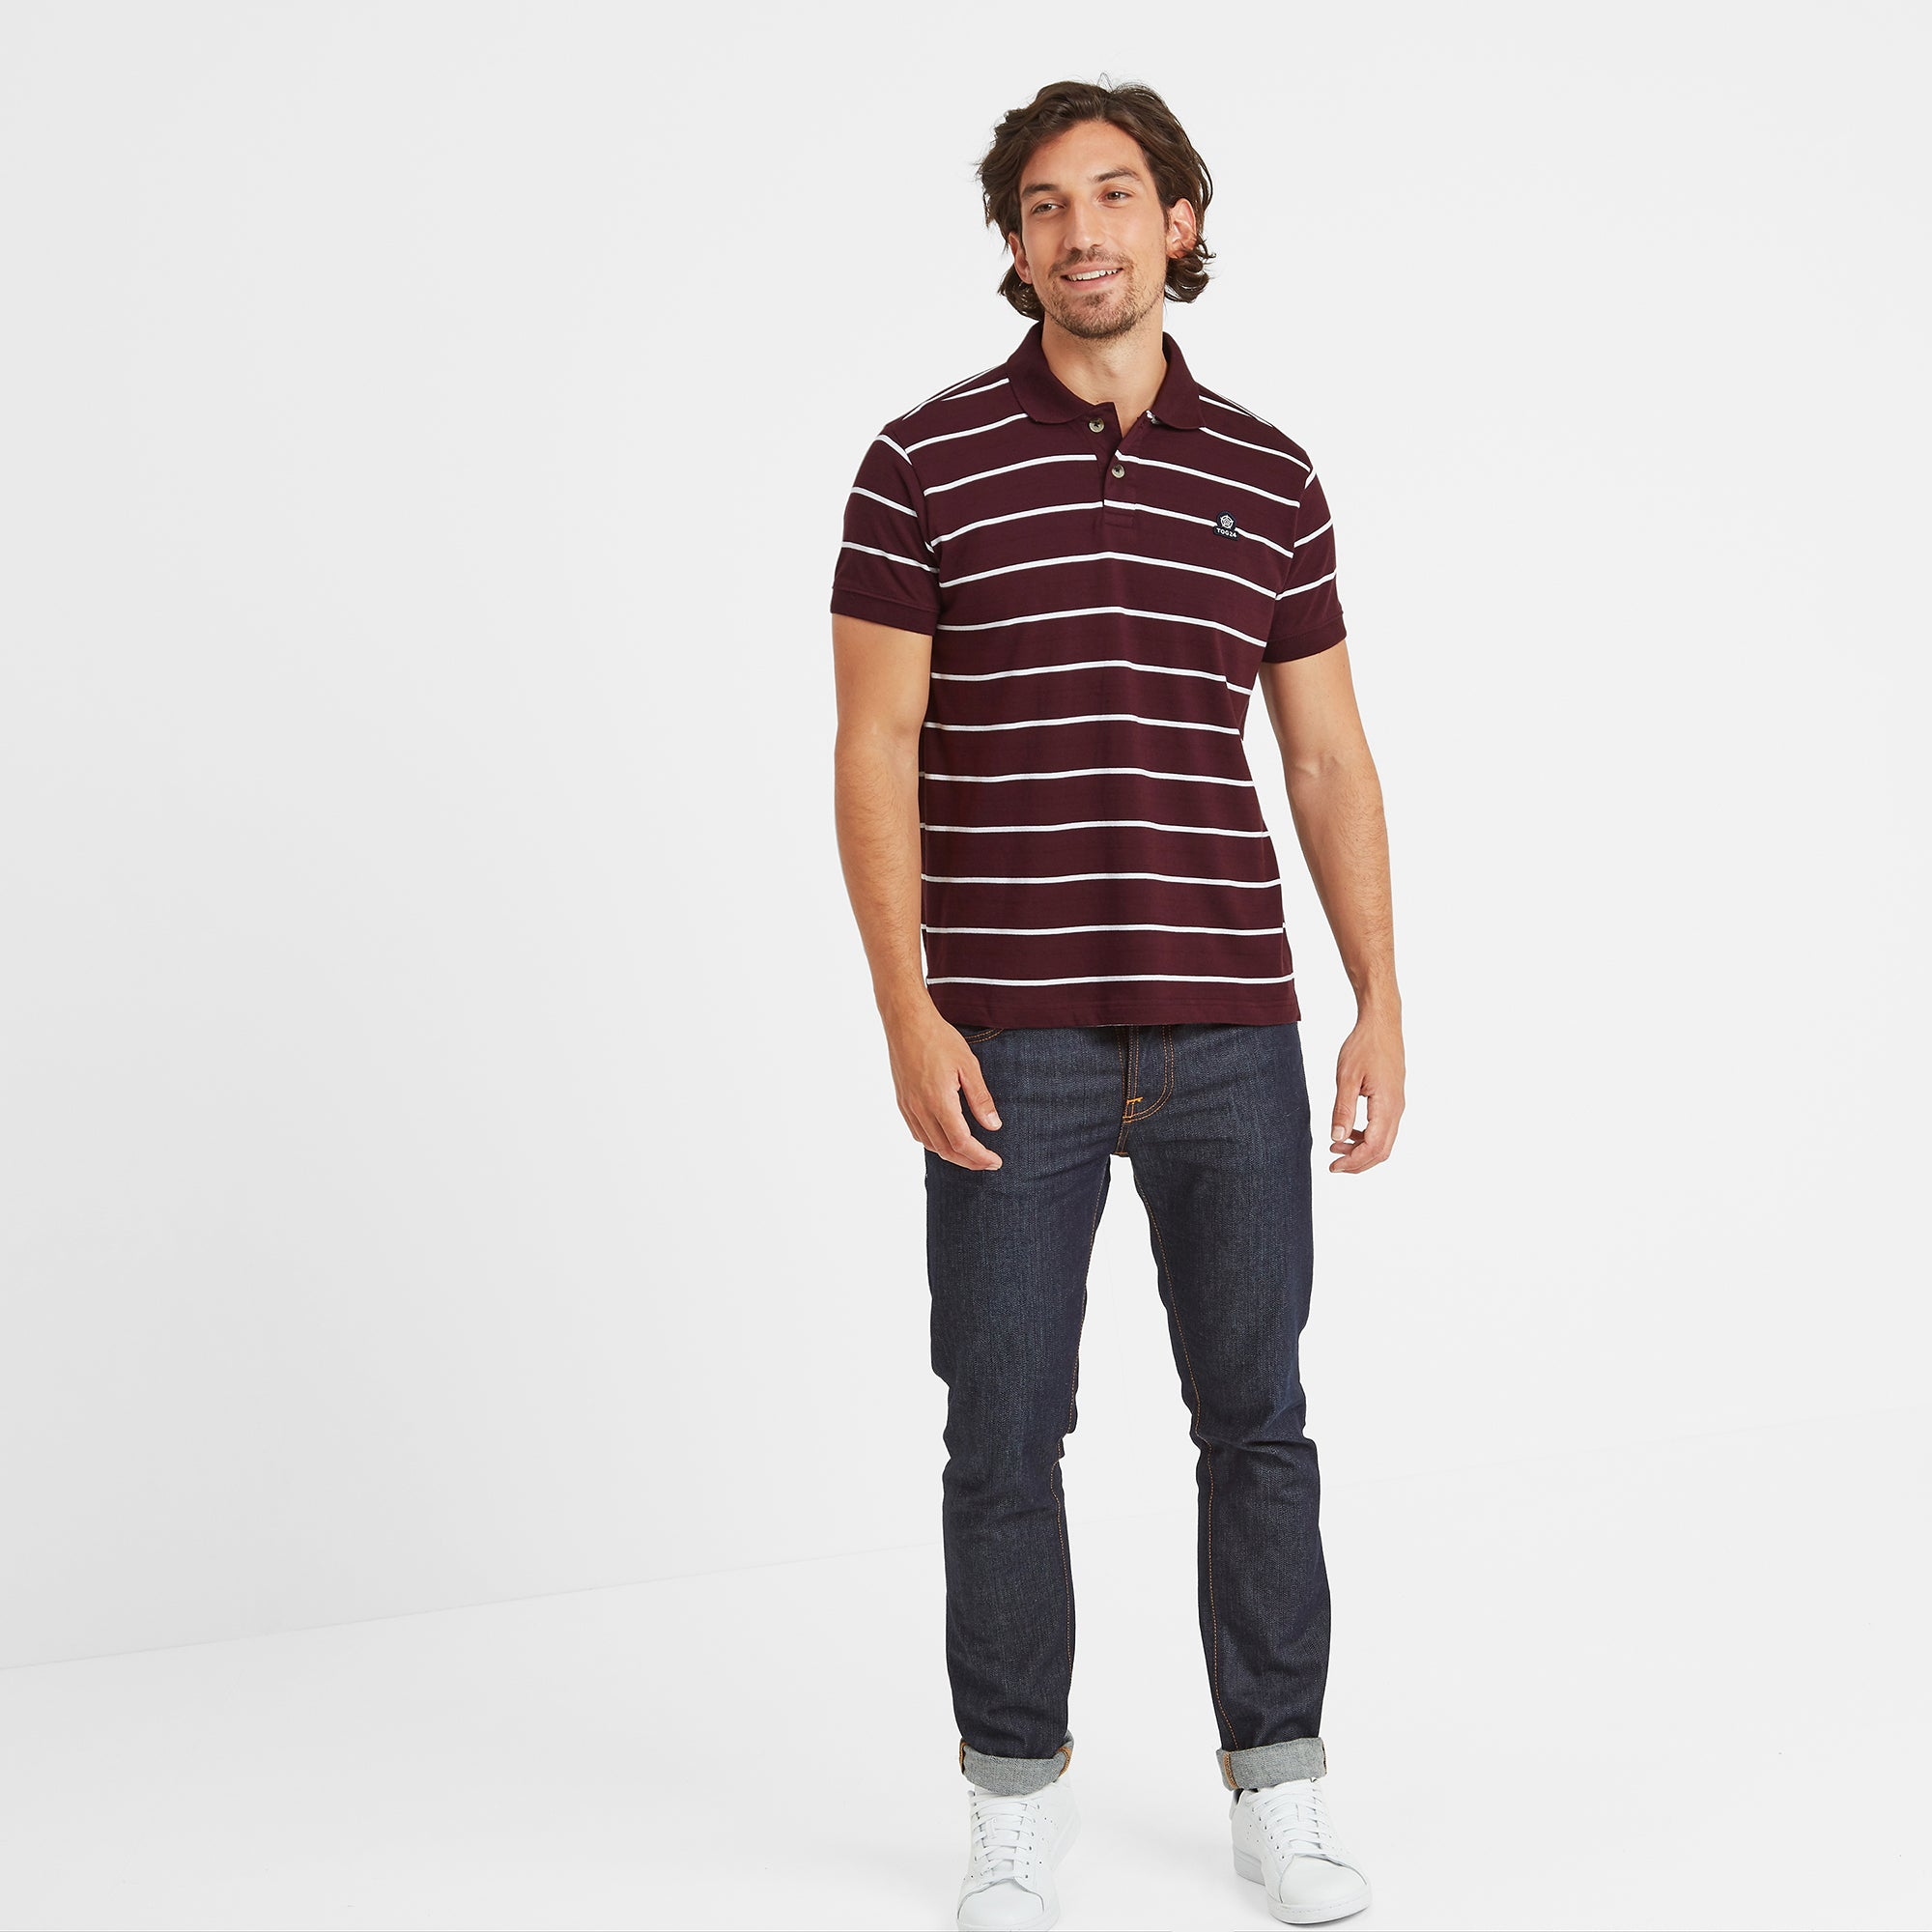 Alfie Mens Stripe Polo Shirt - Deep Port